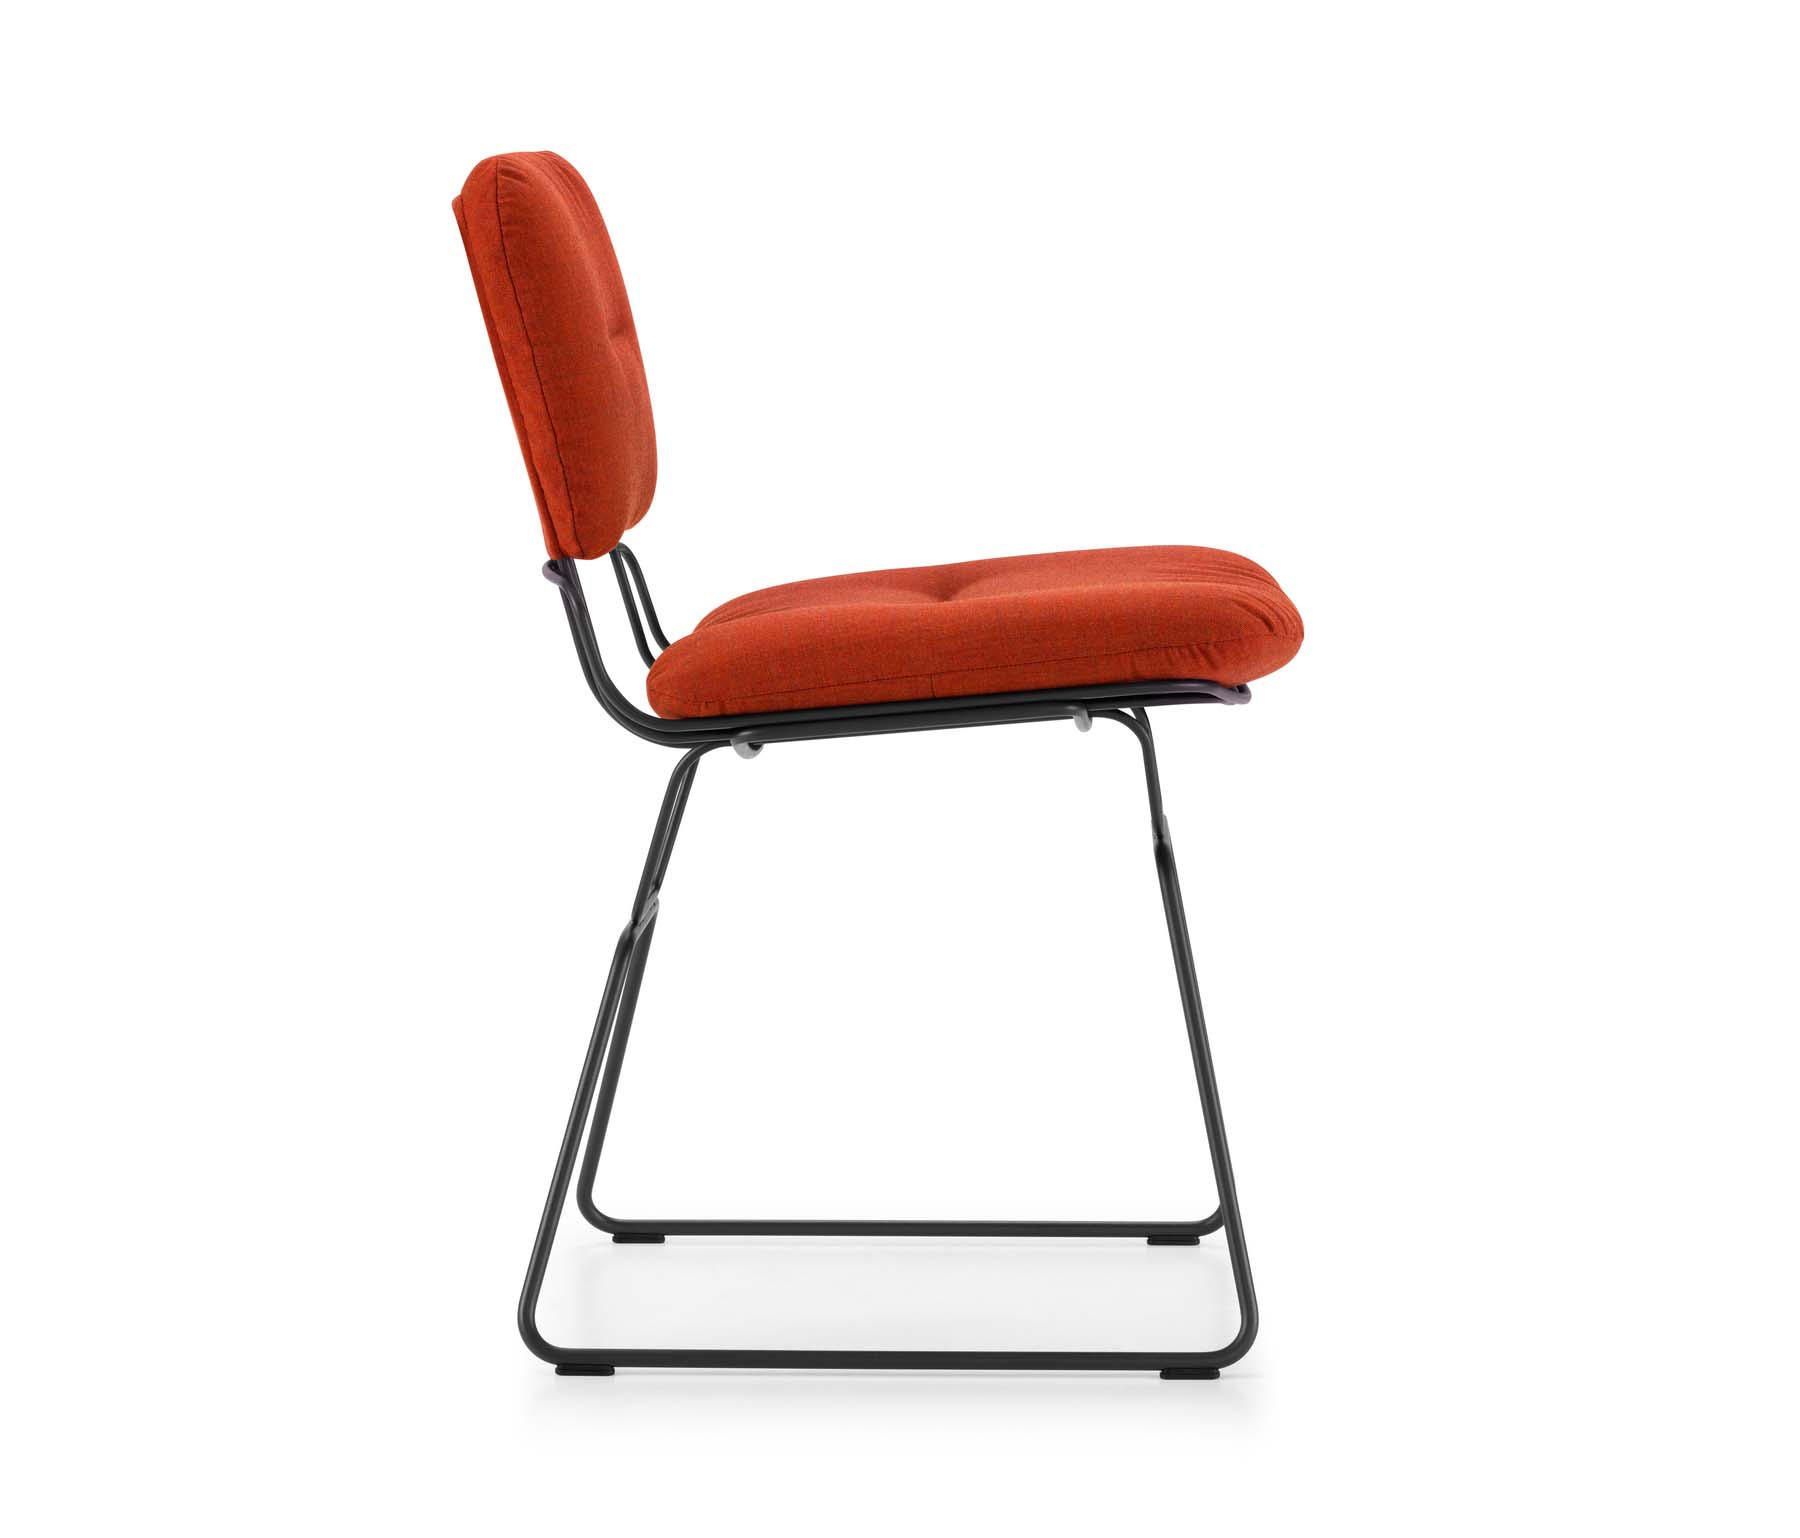 ALAMBRE - Restaurant chairs from Girsberger | Architonic